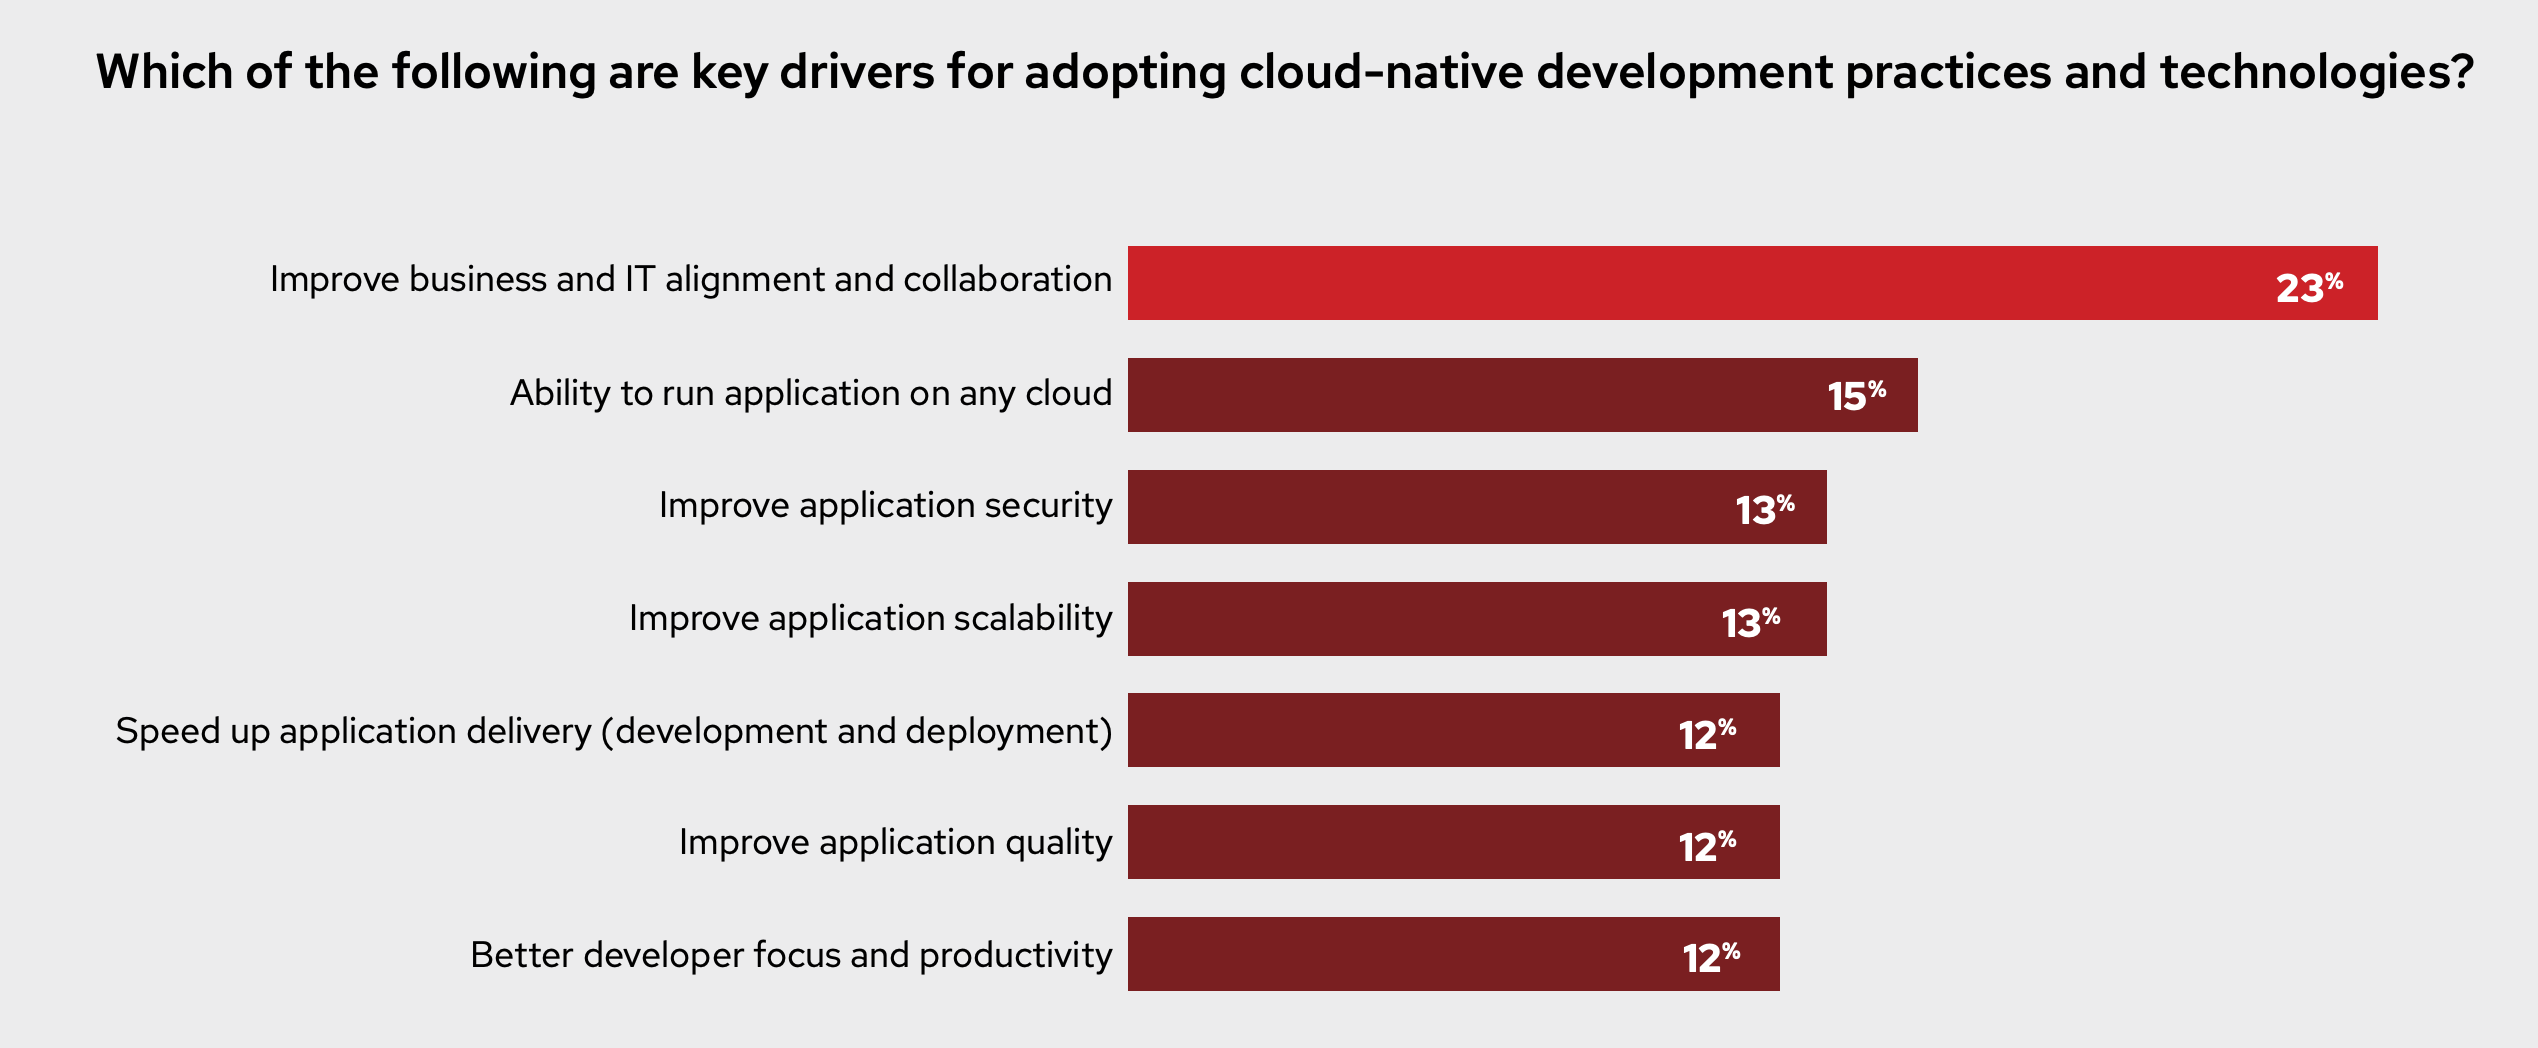 Which of the following are key drivers for adopting cloud-native development practices and technologies? Figure 4: Key drivers for cloud-native development